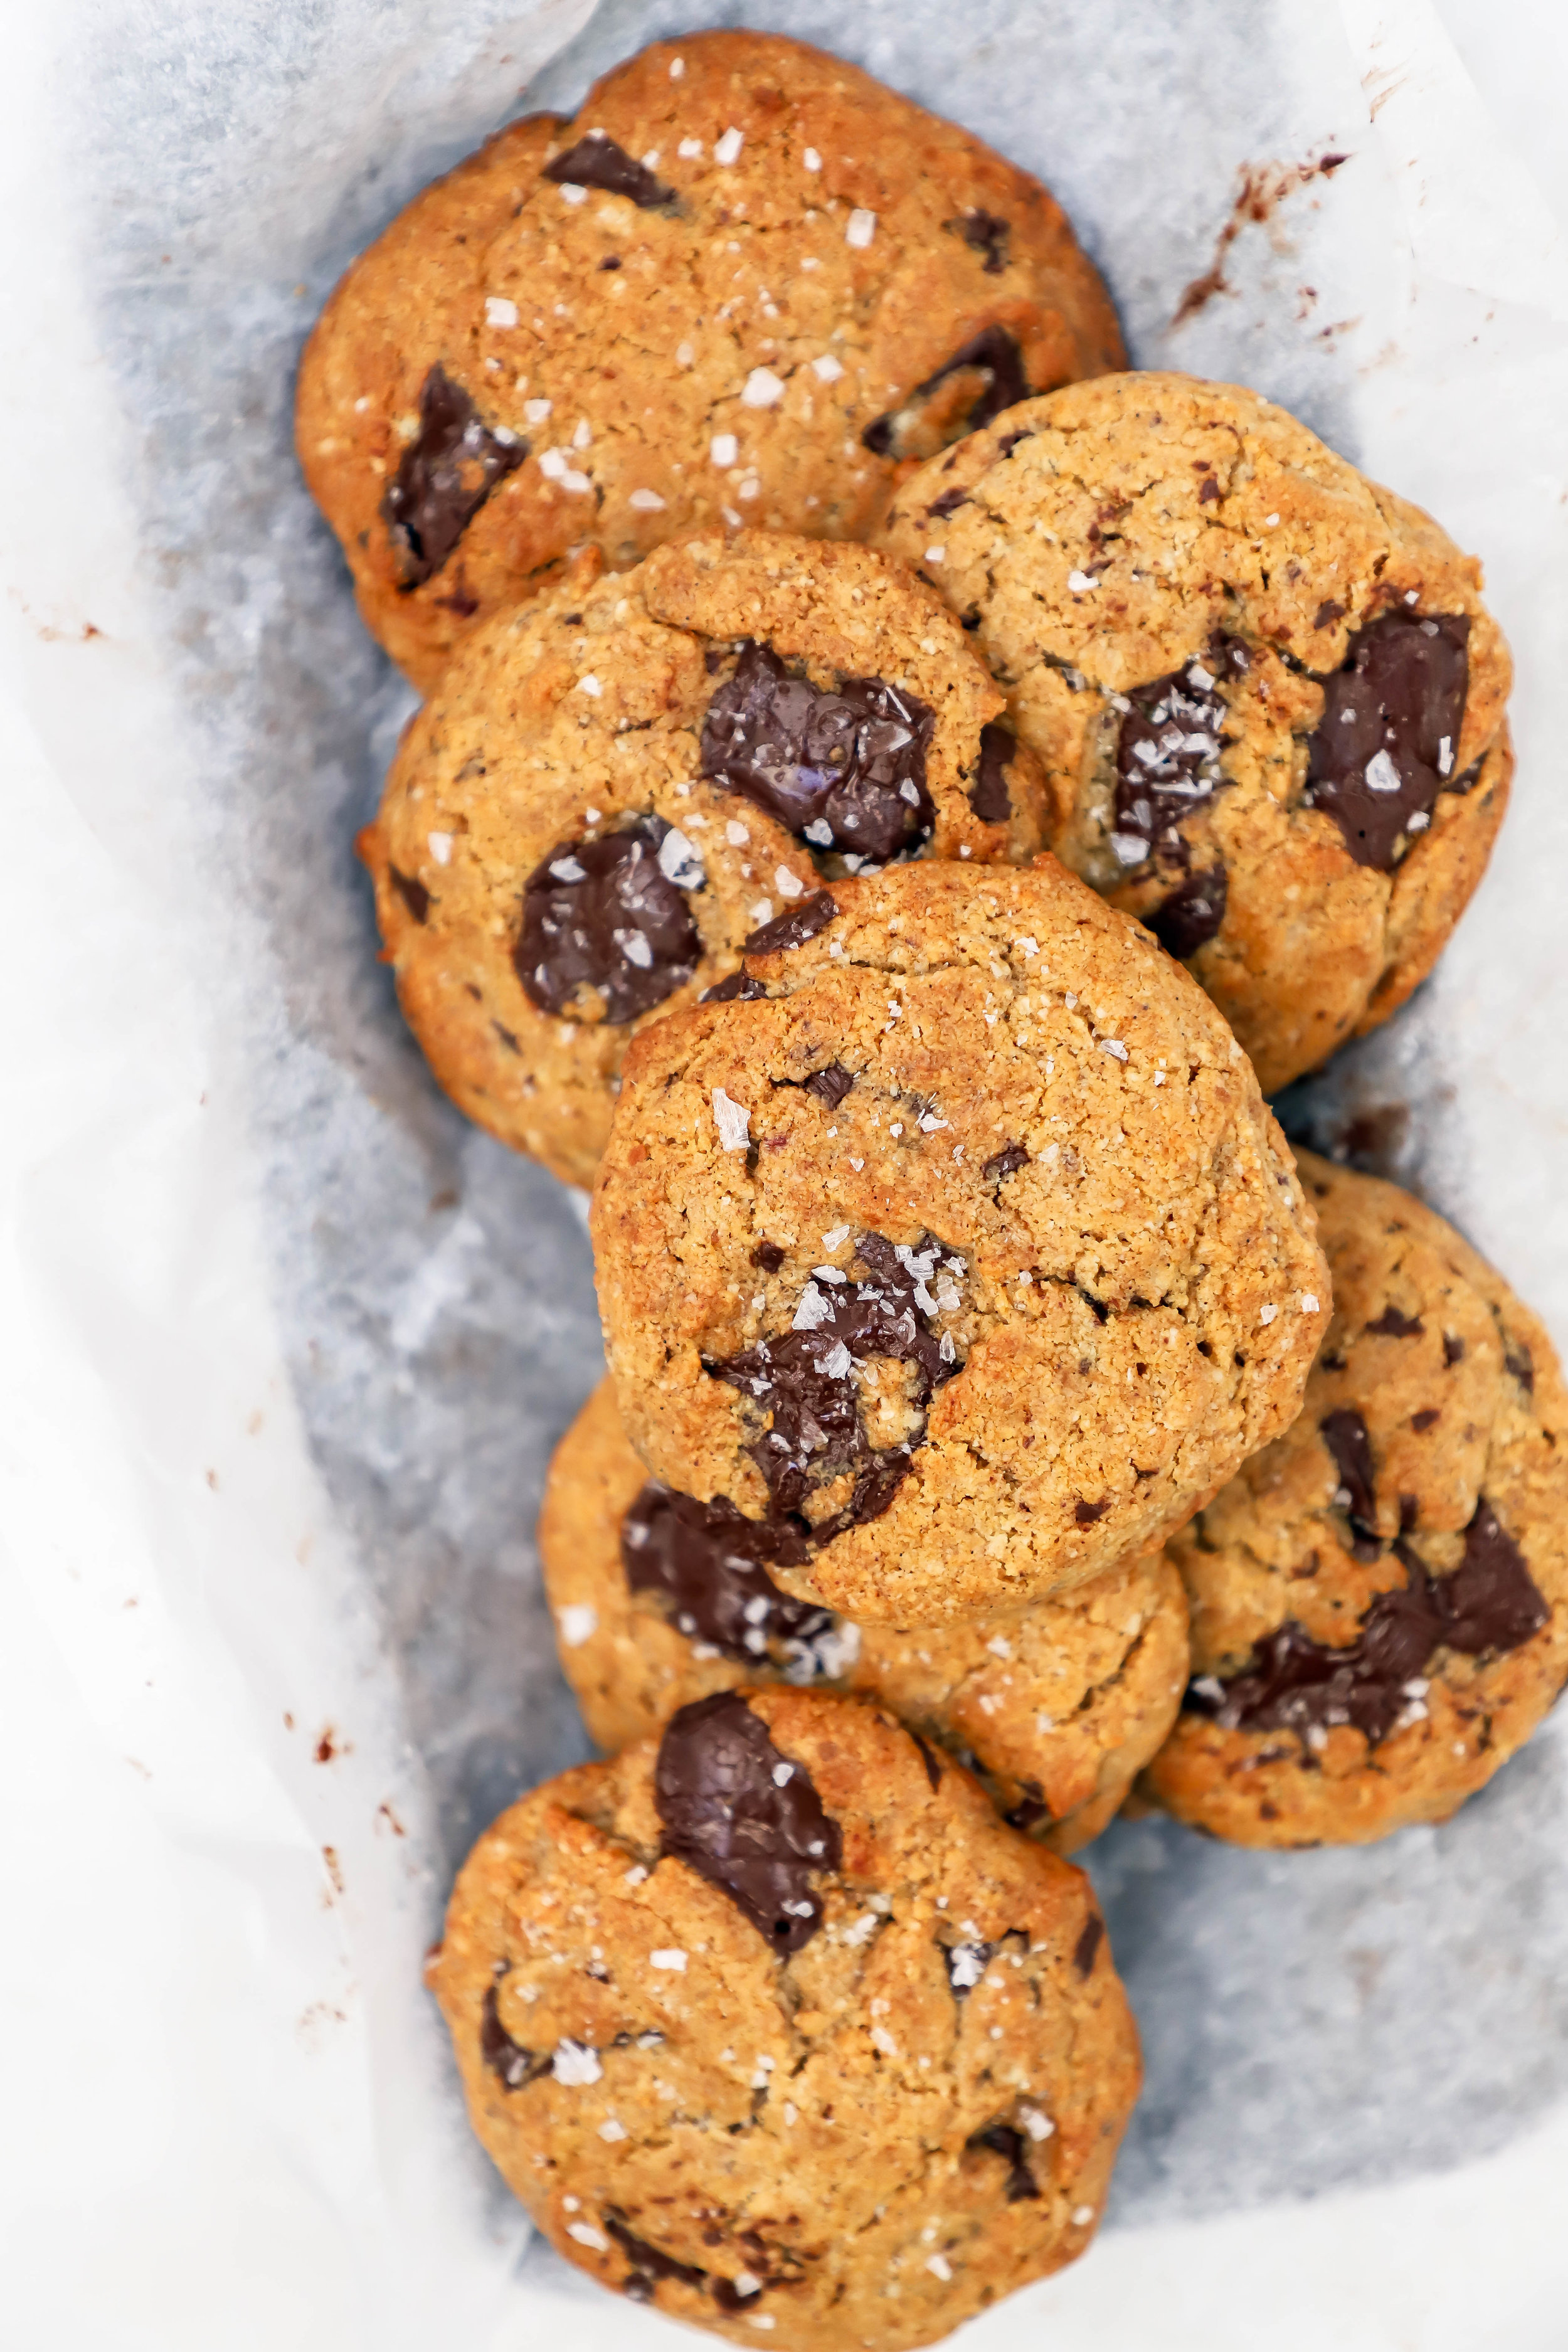 vegan and gluten-free chocolate chip cookies with tahini and coconut oil, overlapping on parchment paper